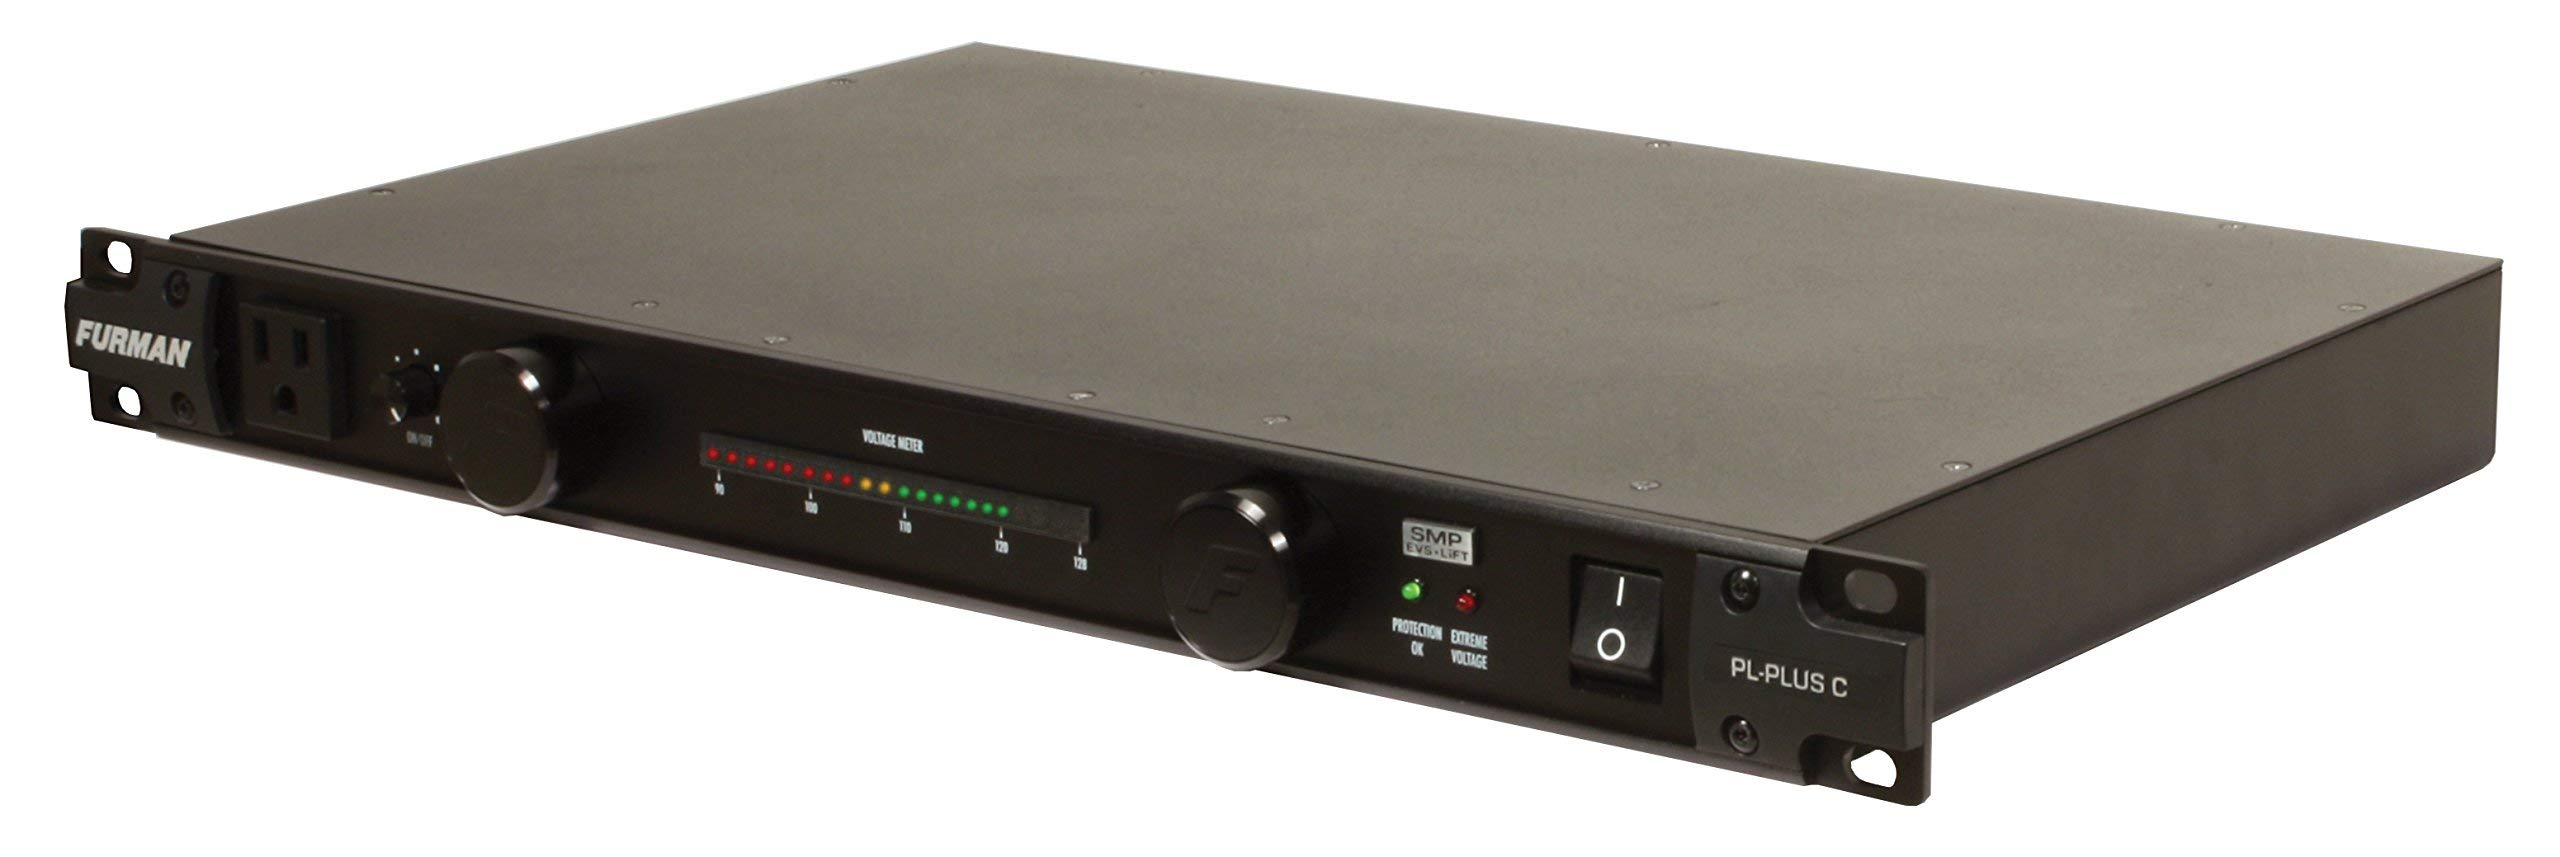 Furman PL-PLUS C 15 Amp Power Conditioner (Renewed)